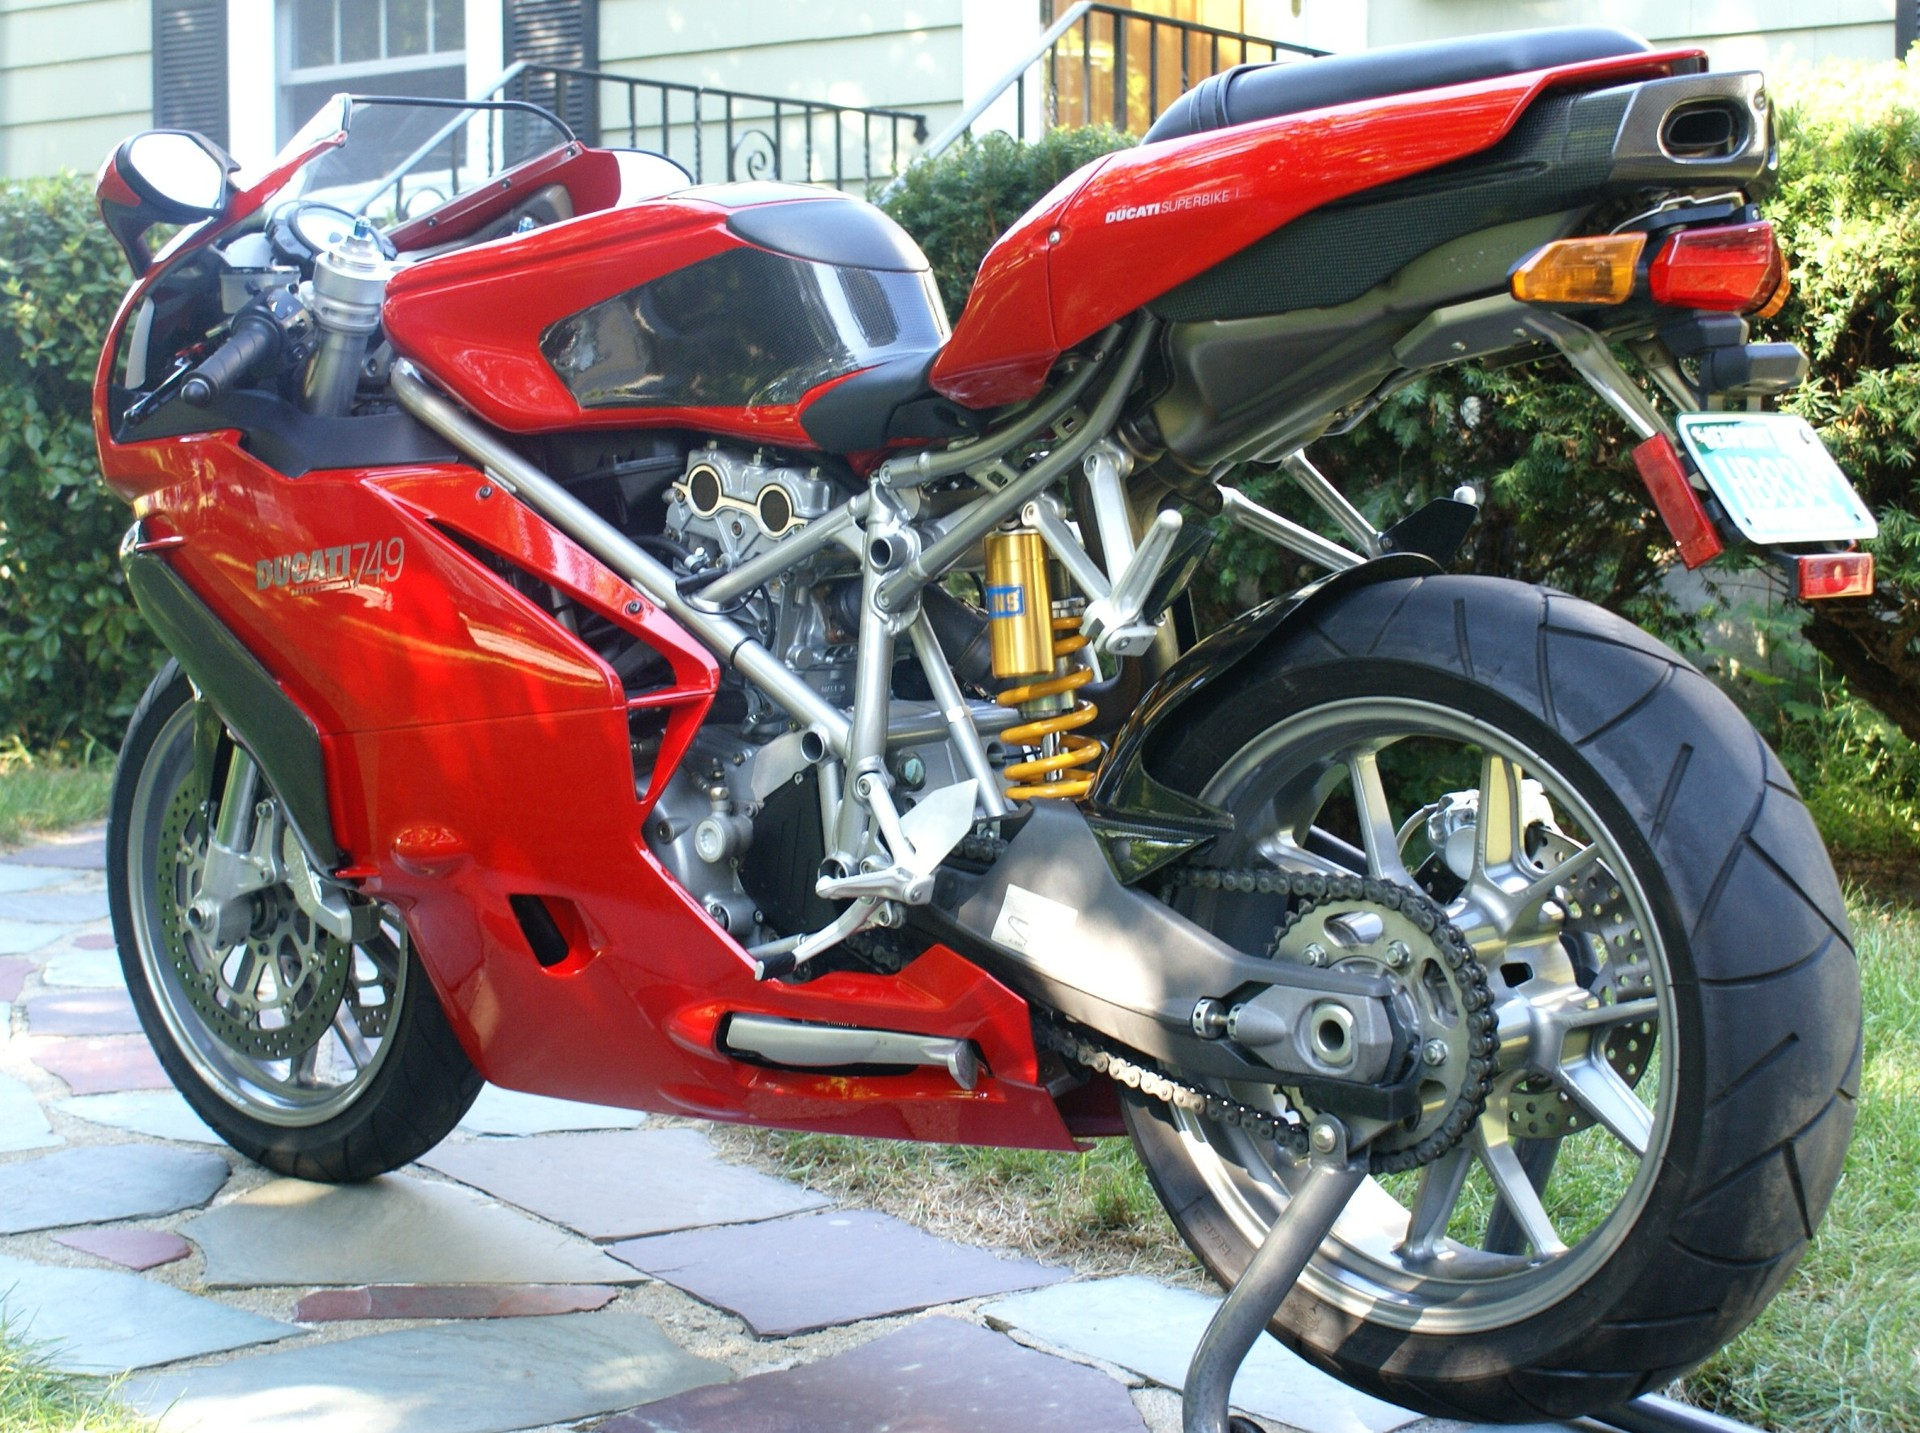 Ducati 749 wallpapers #87438